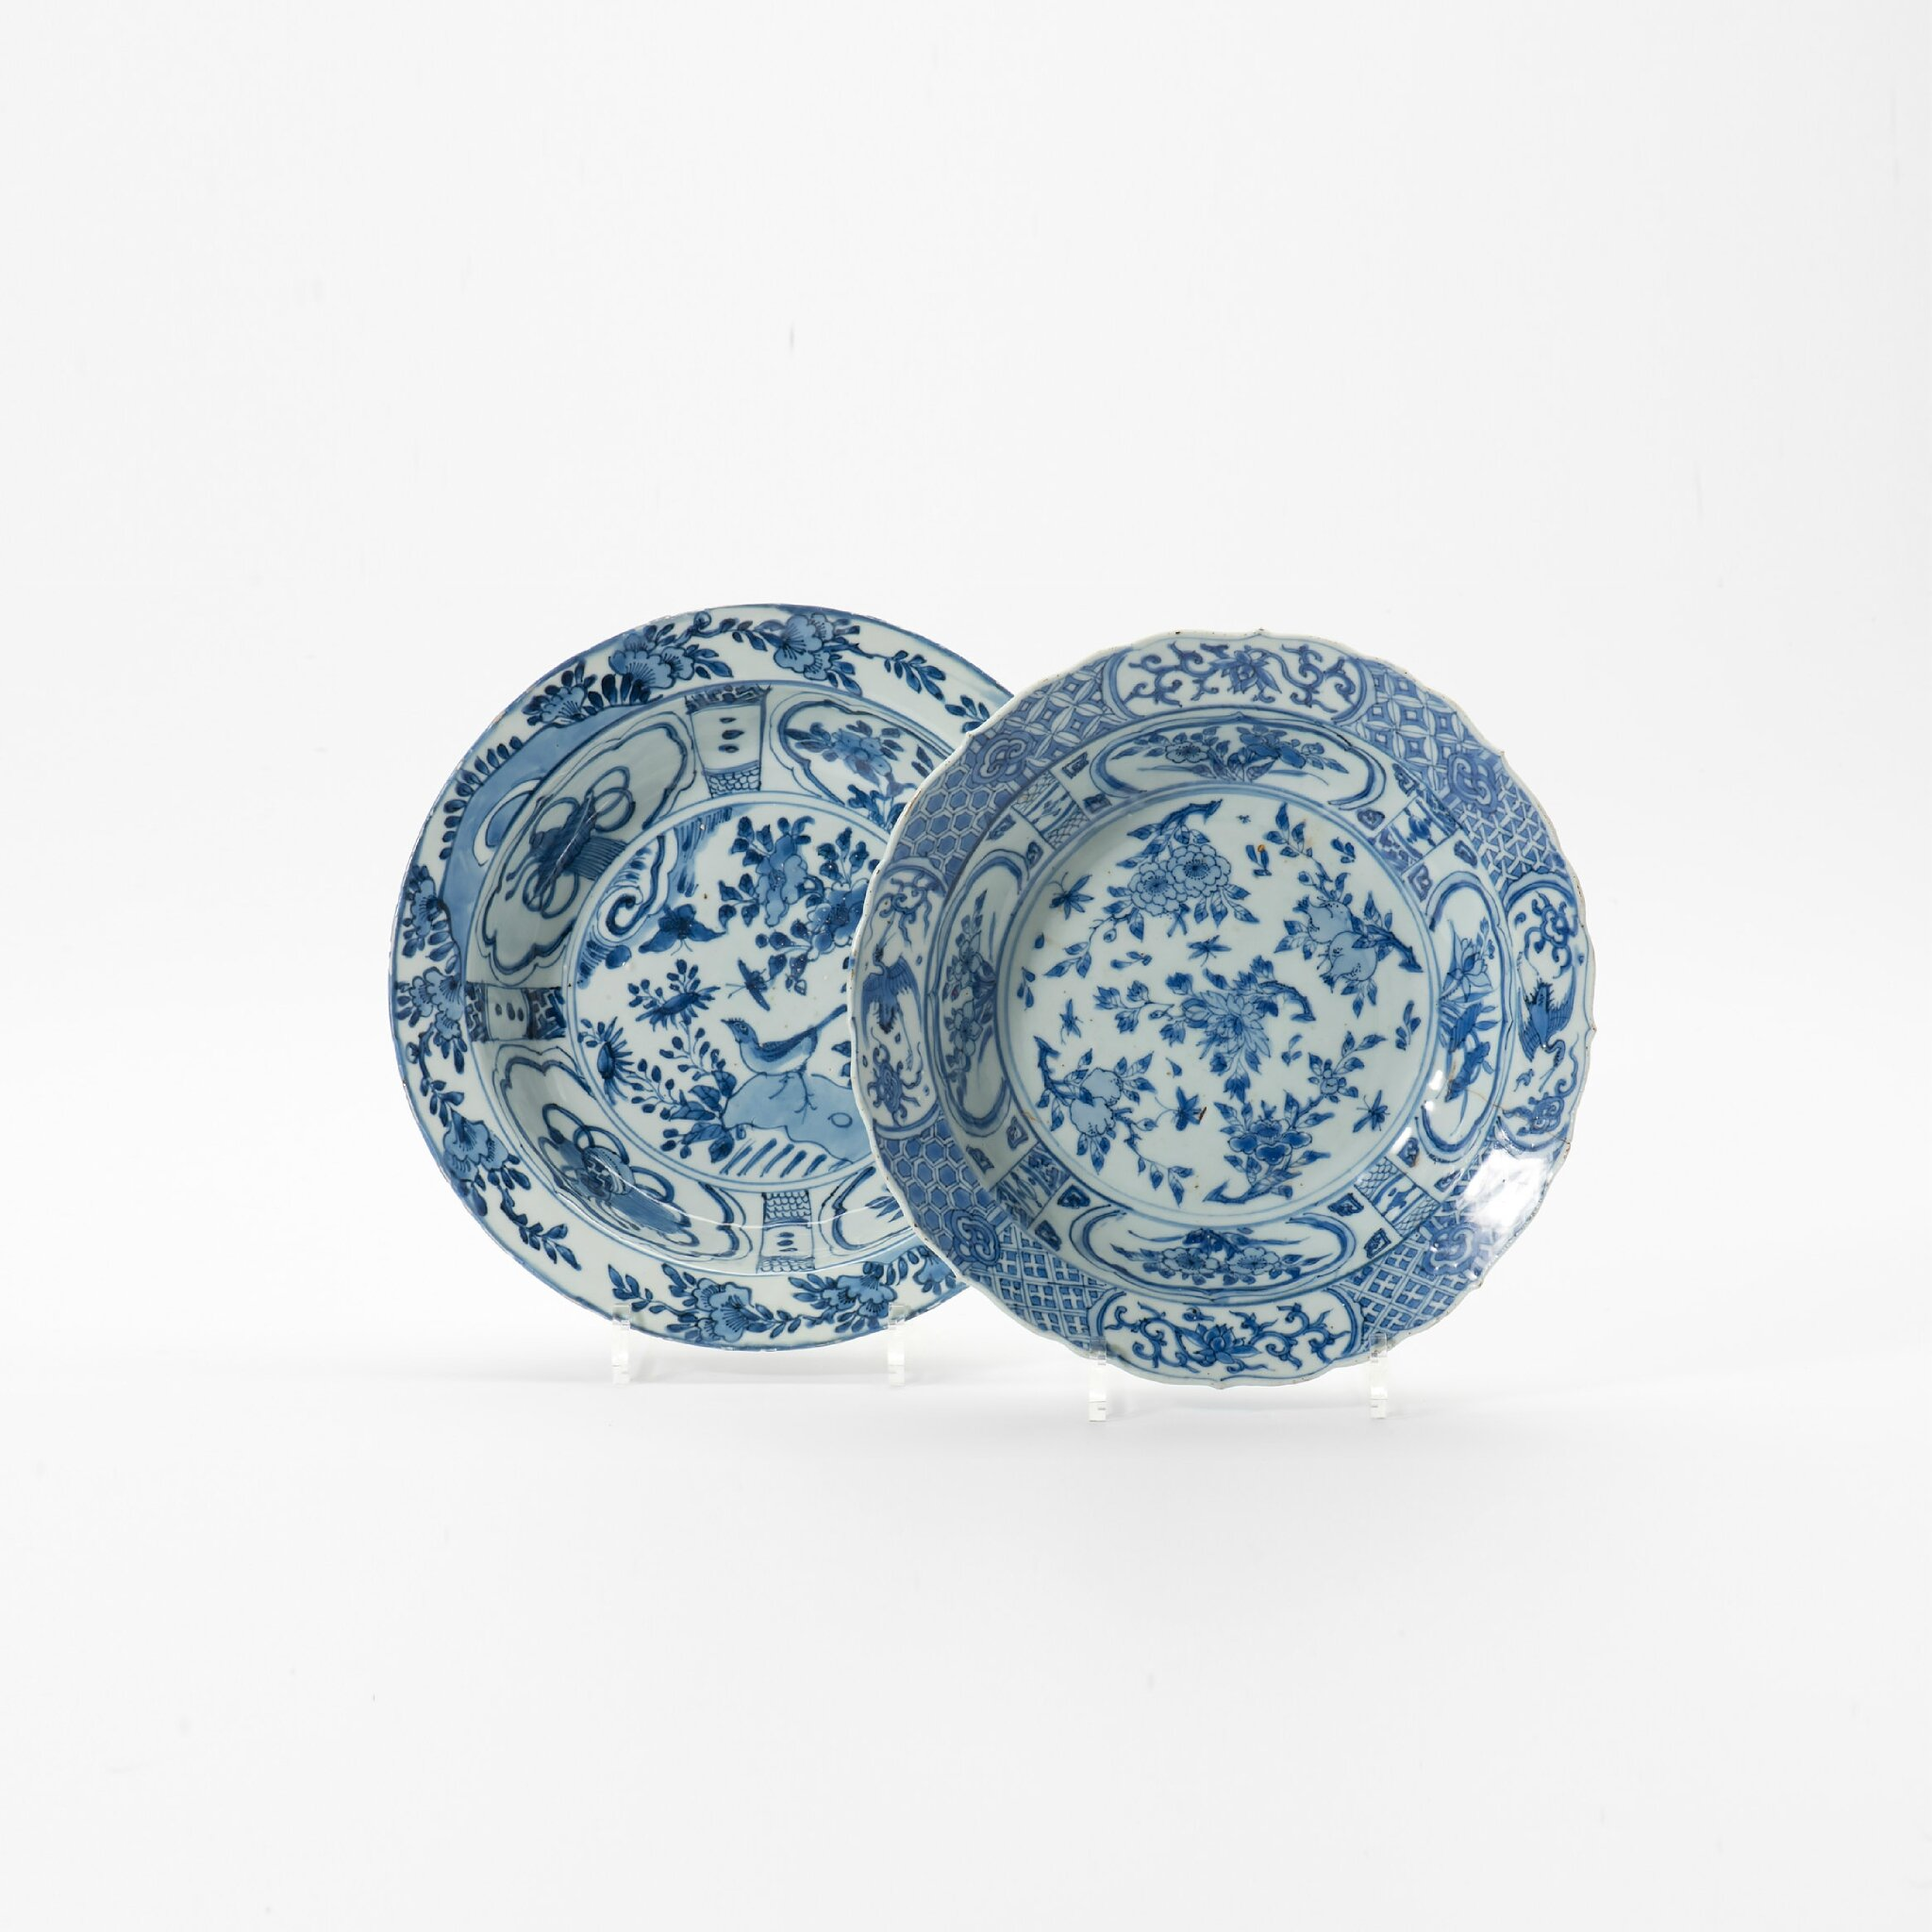 Two large dishes, Wanli period (1573-1619)